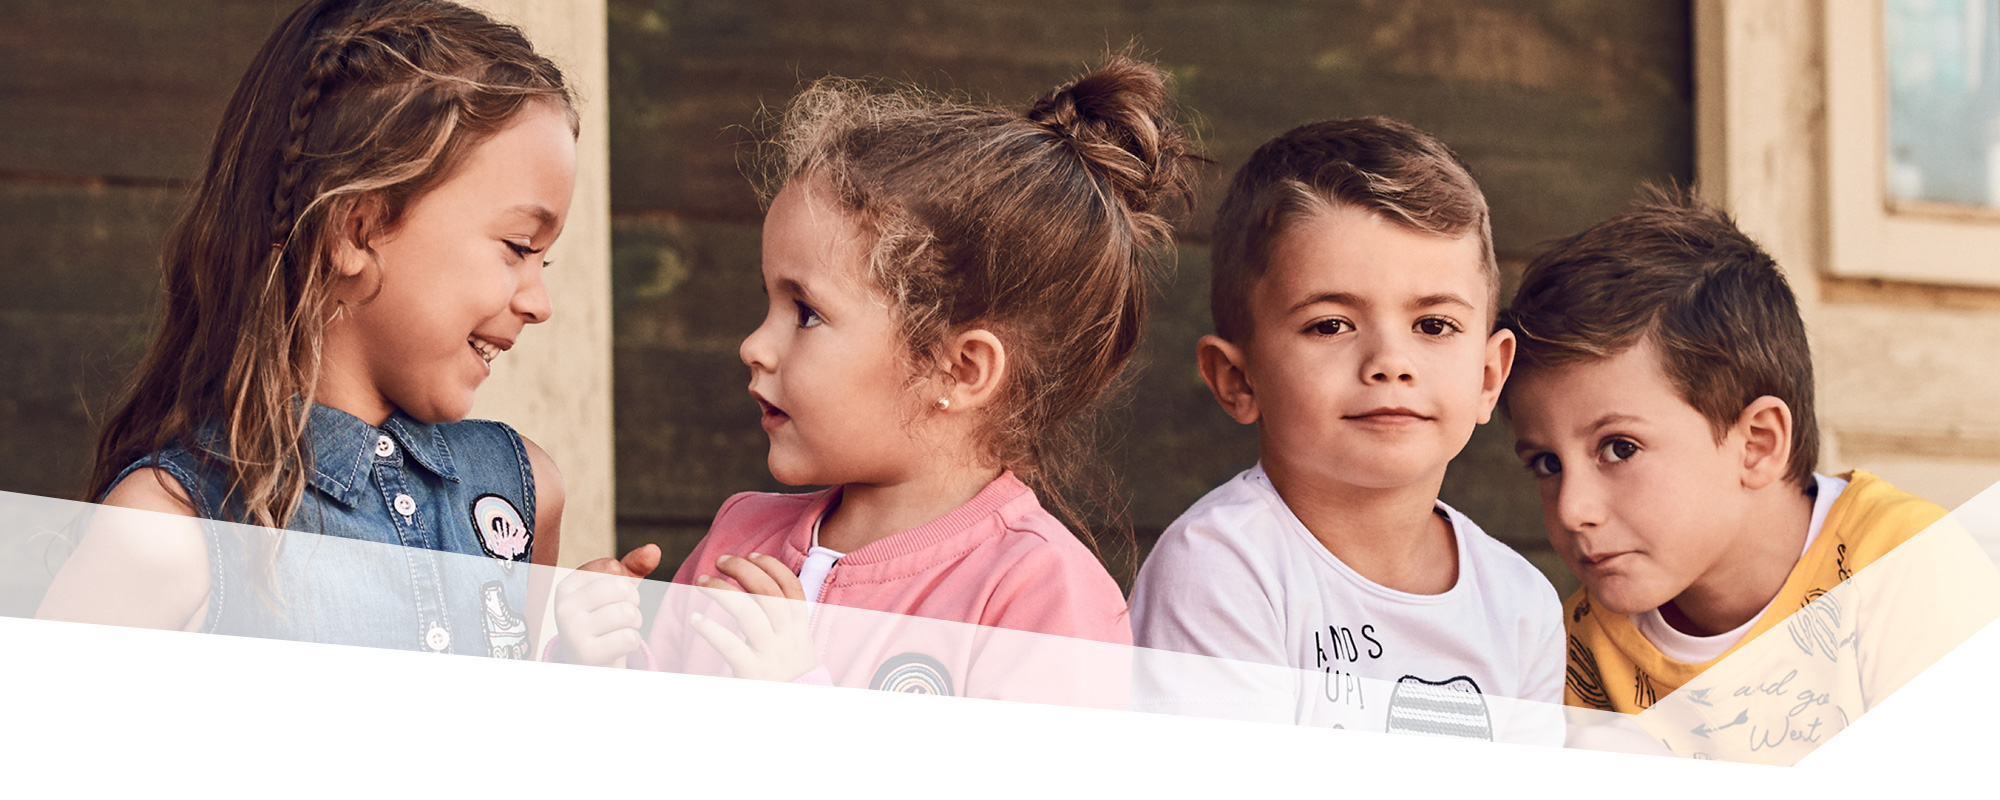 schuenemann__header_kinder_babies